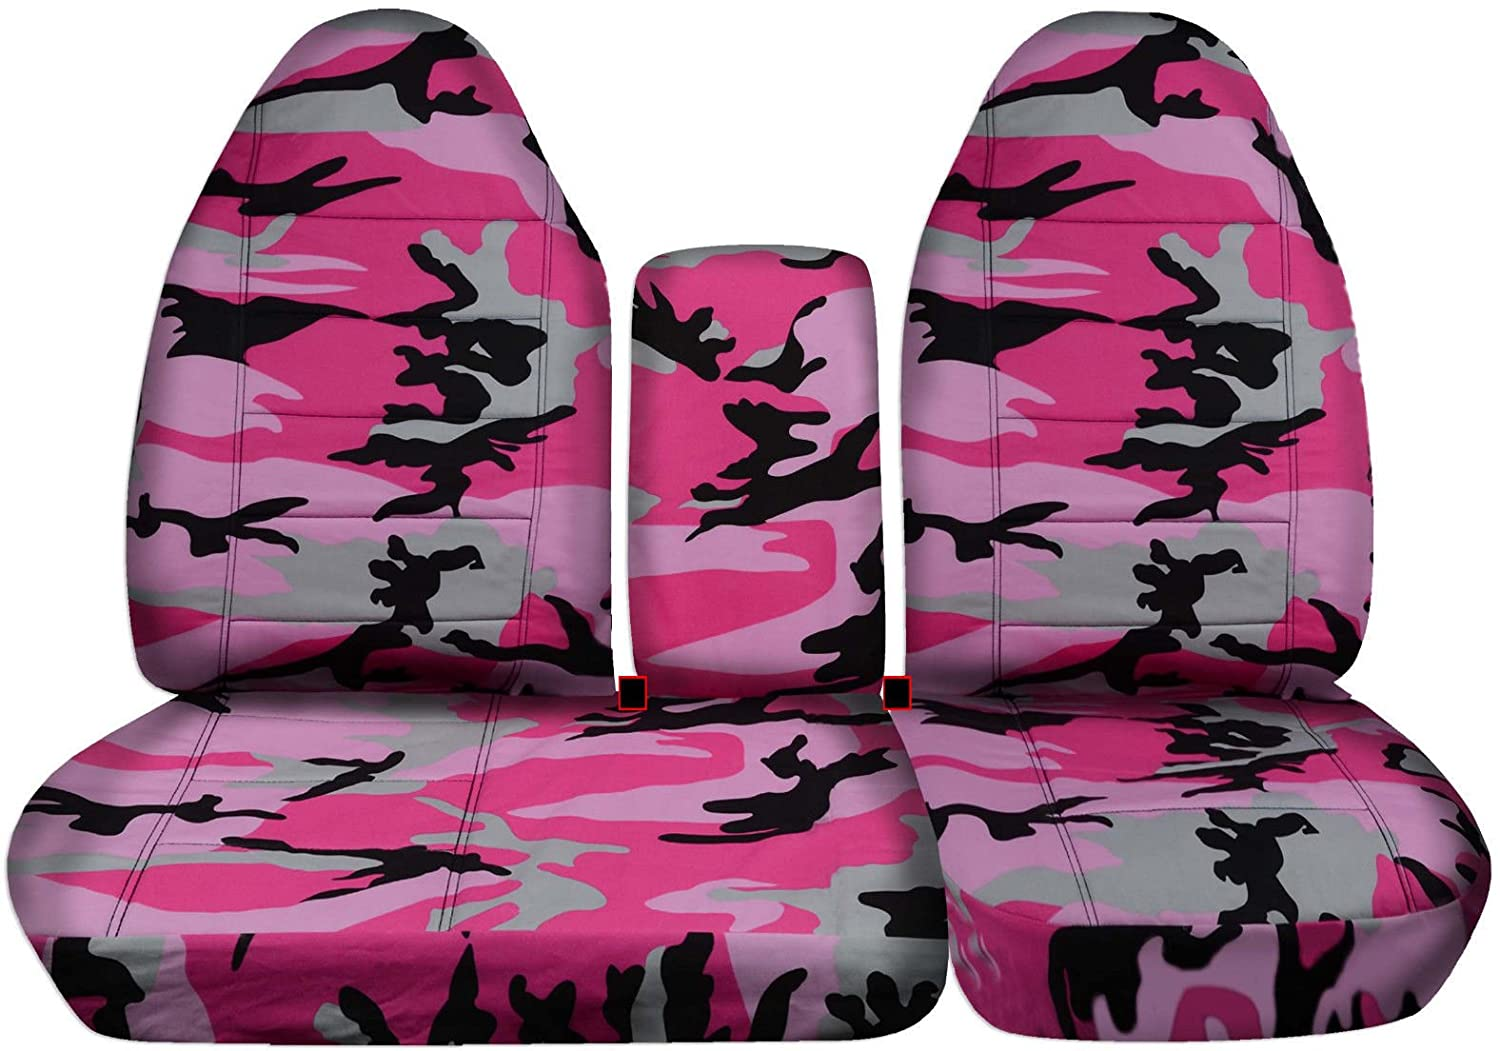 Designcovers 1997-2000 Ford F-150 Camo Truck Seat Covers (Front 40/60 Split Bench) Opening Center Console/Solid Armrest: Gray Real Tree Camouflage (16 Prints) 1998 1999 F-Series F150